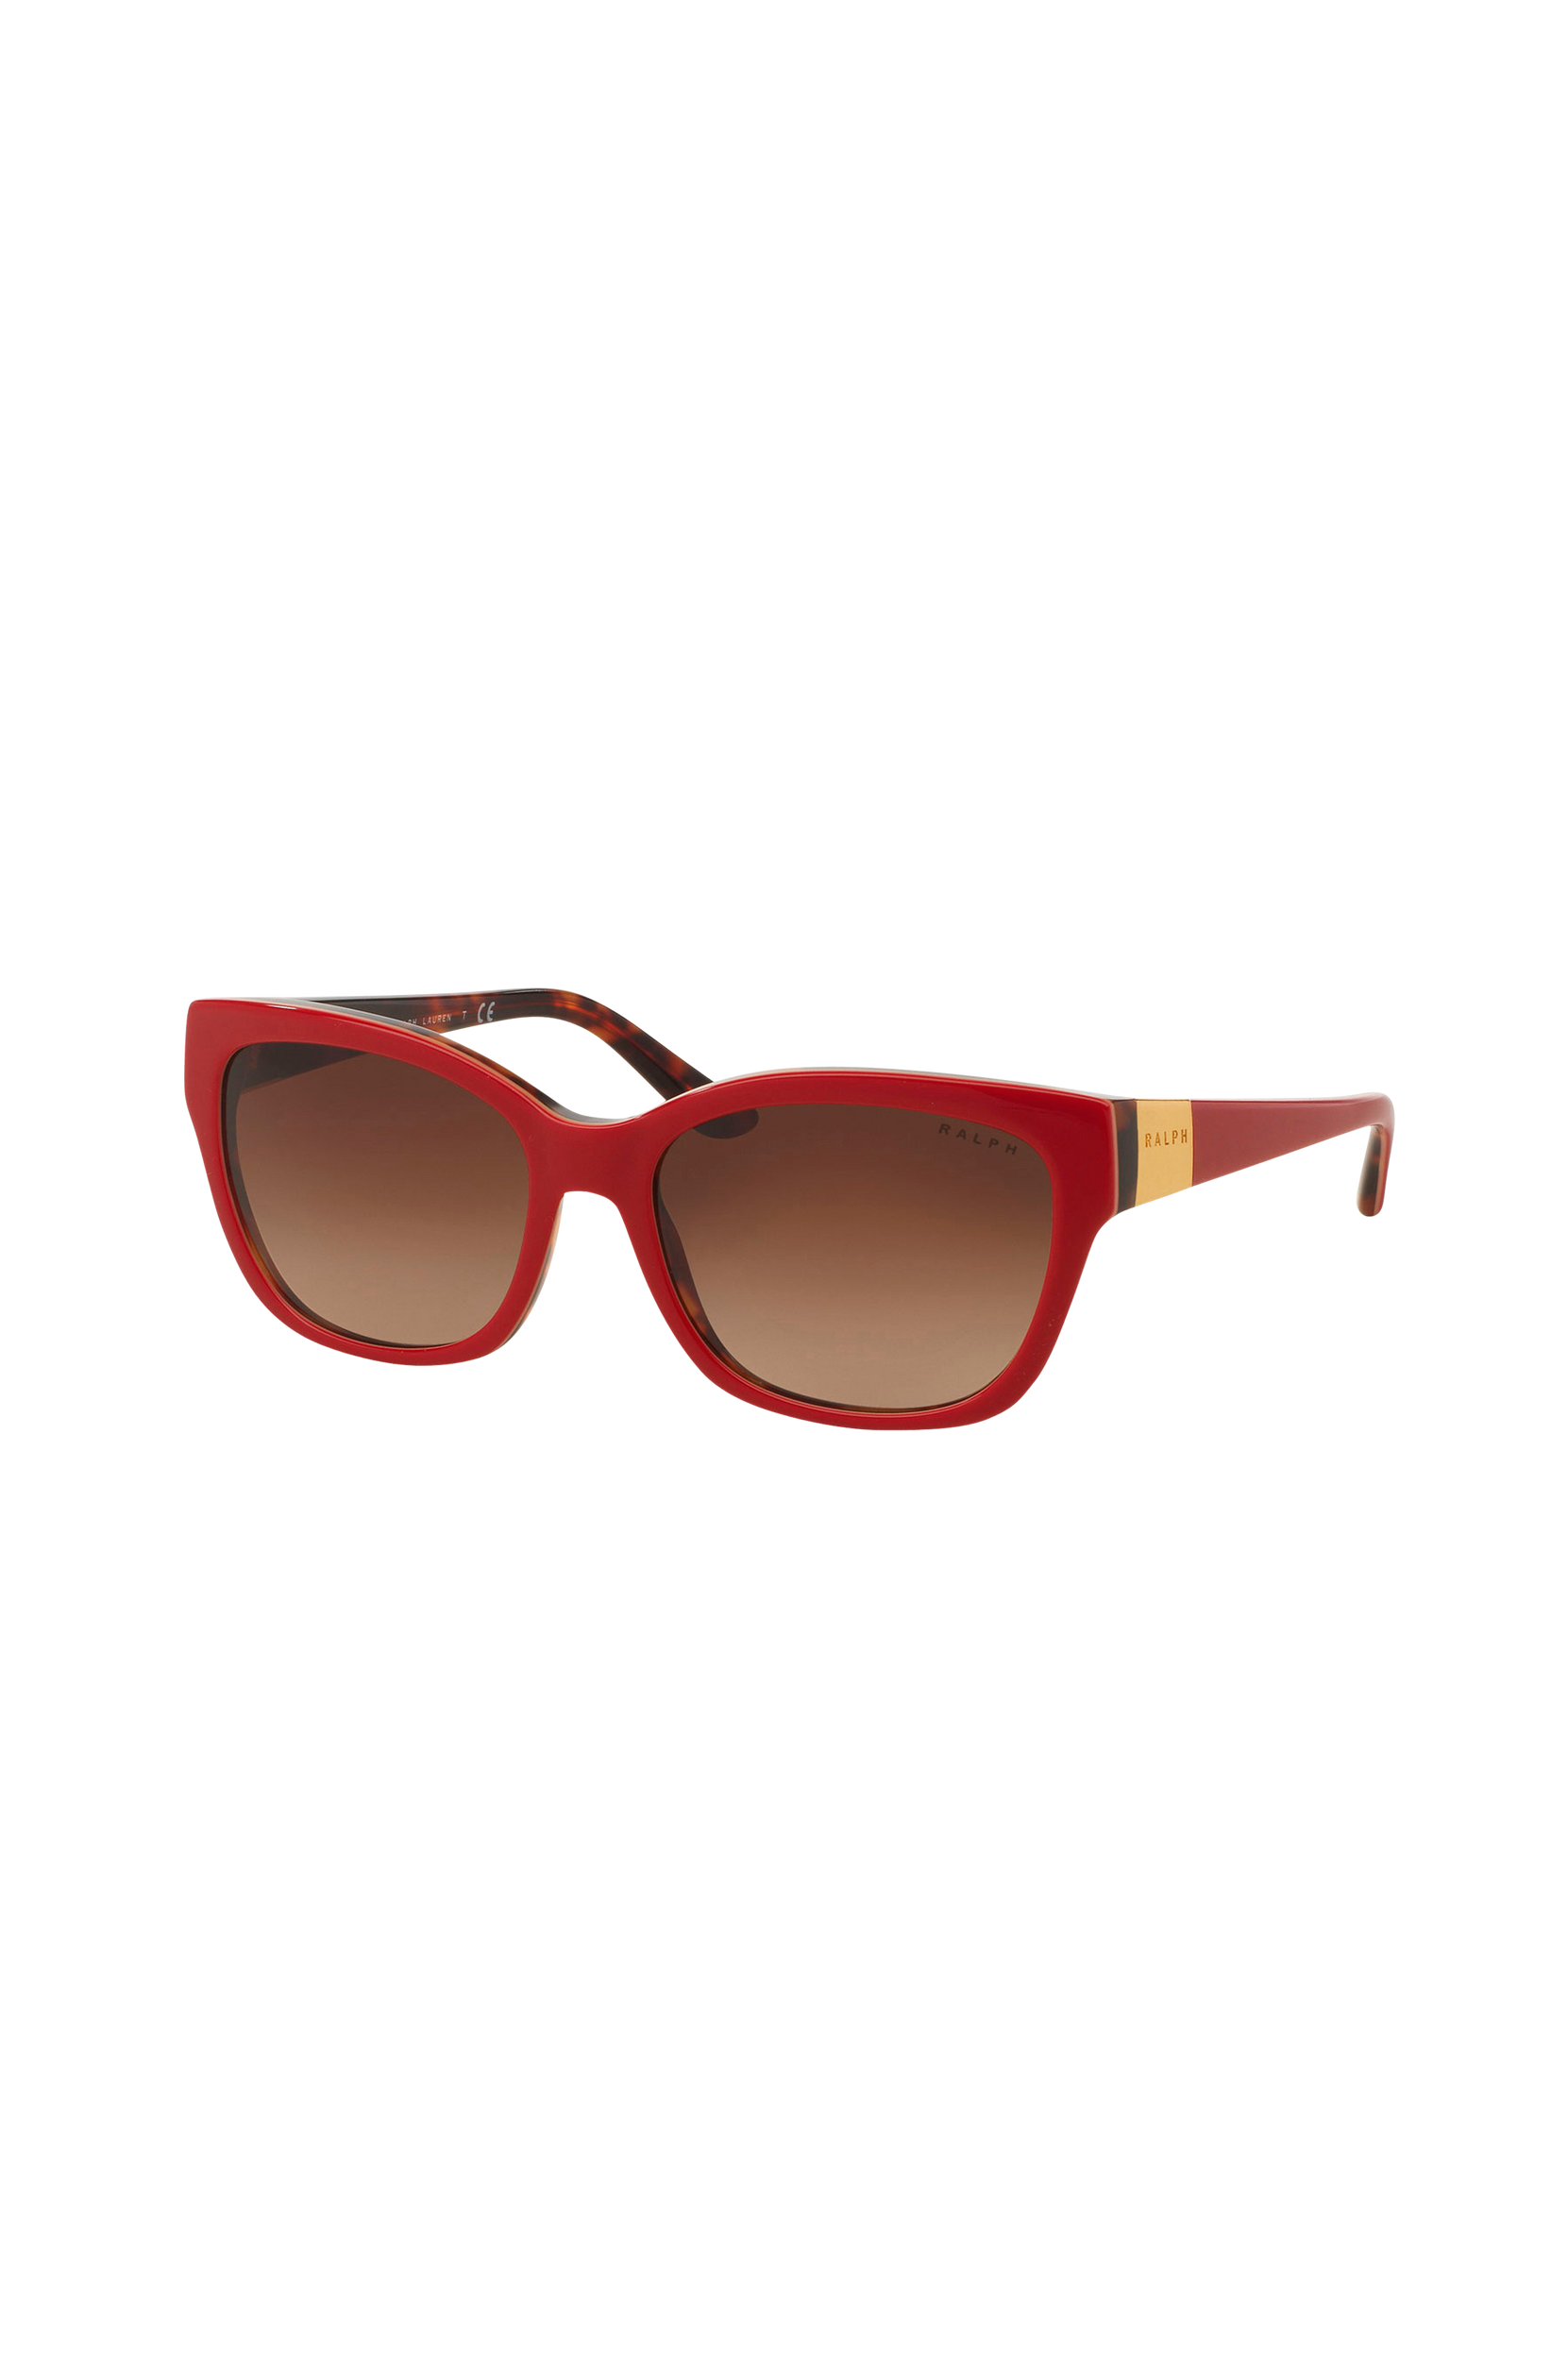 Solbriller Essentials Ra5208 Red Tortoise Ralph Lauren Accessories til Kvinder i